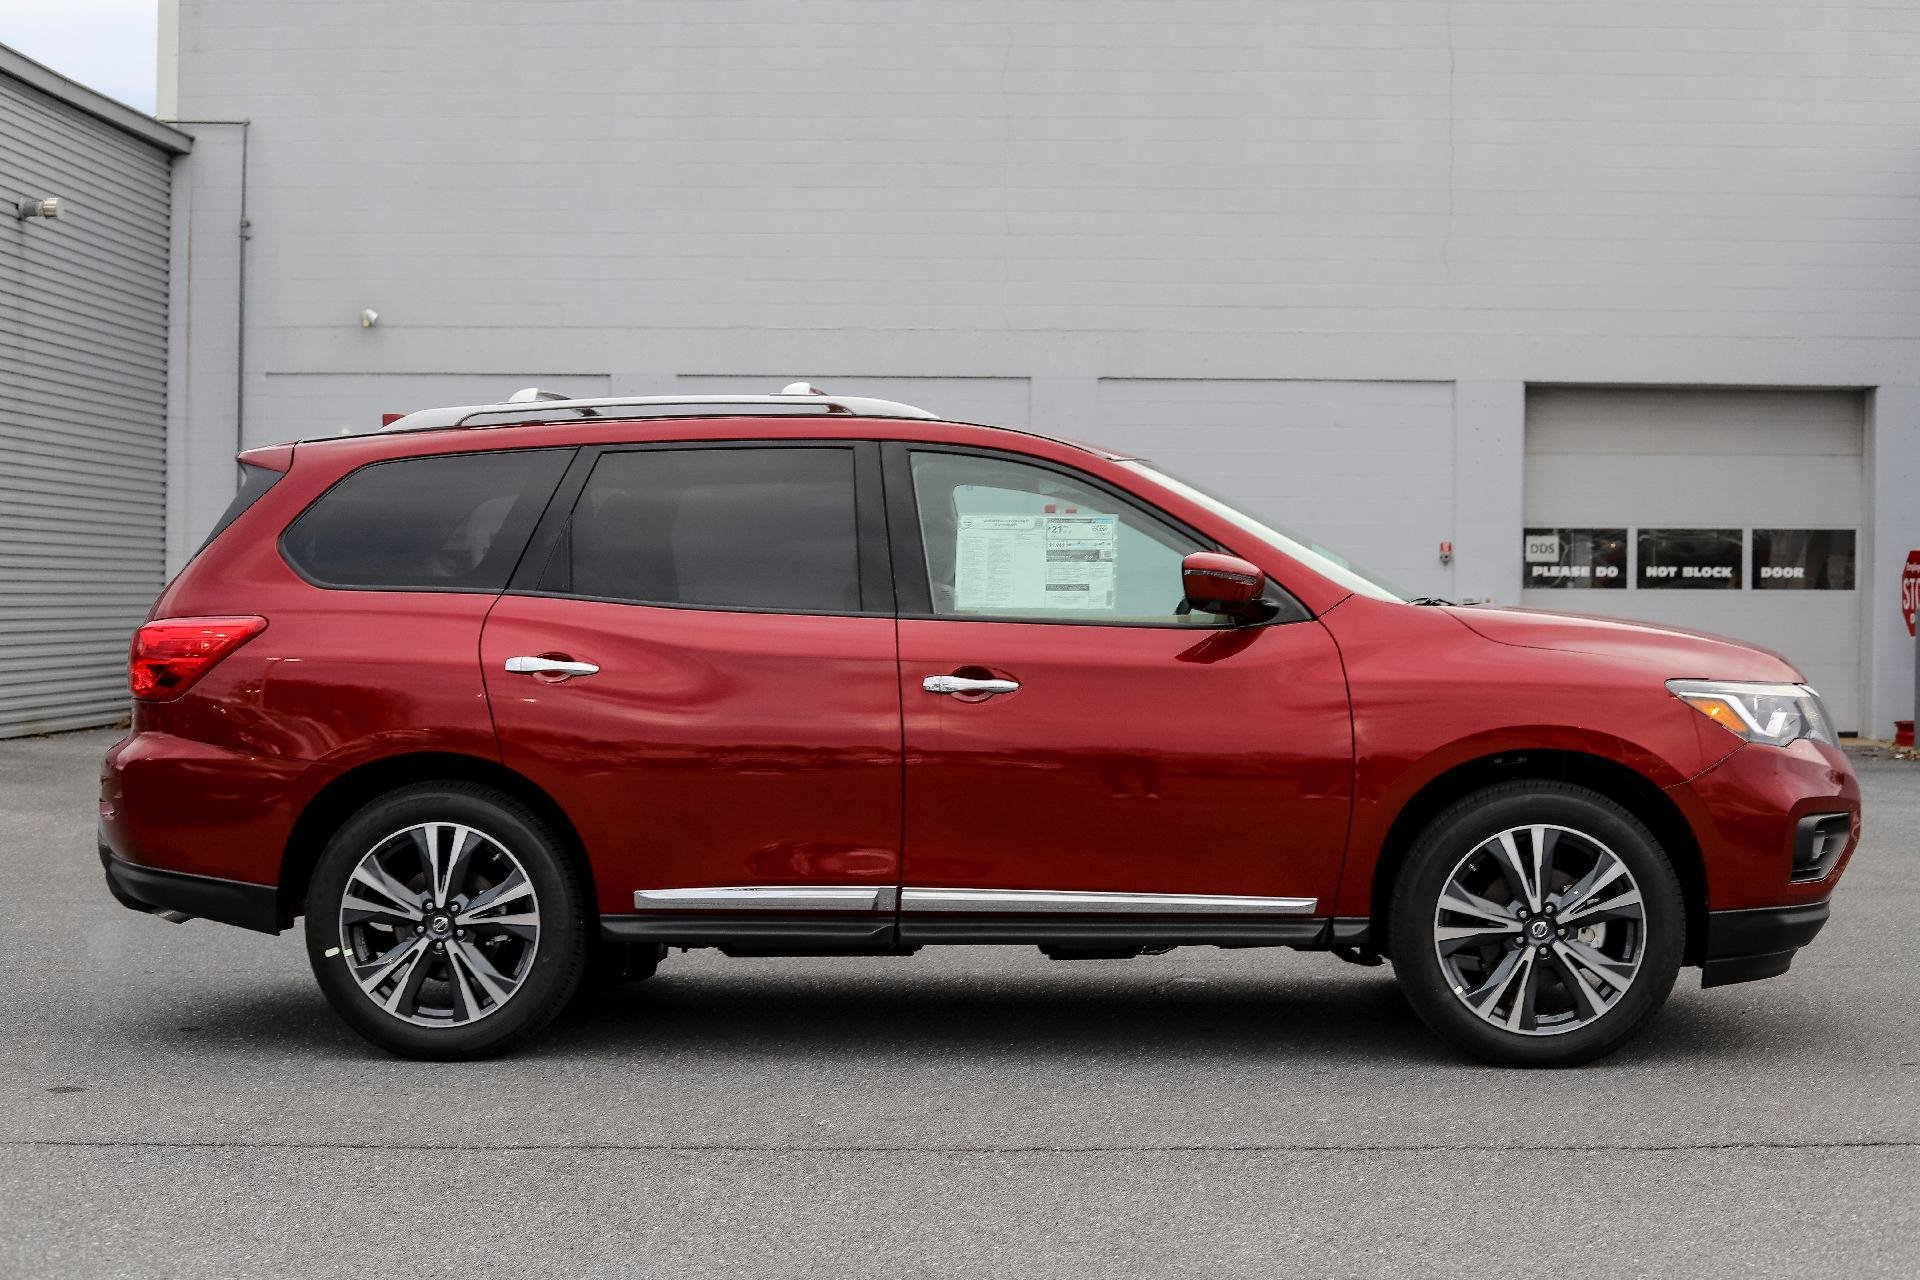 New 2019 Nissan Pathfinder Platinum Platinum for sale $44,560 at M and V Leasing in Brooklyn NY 11223 1